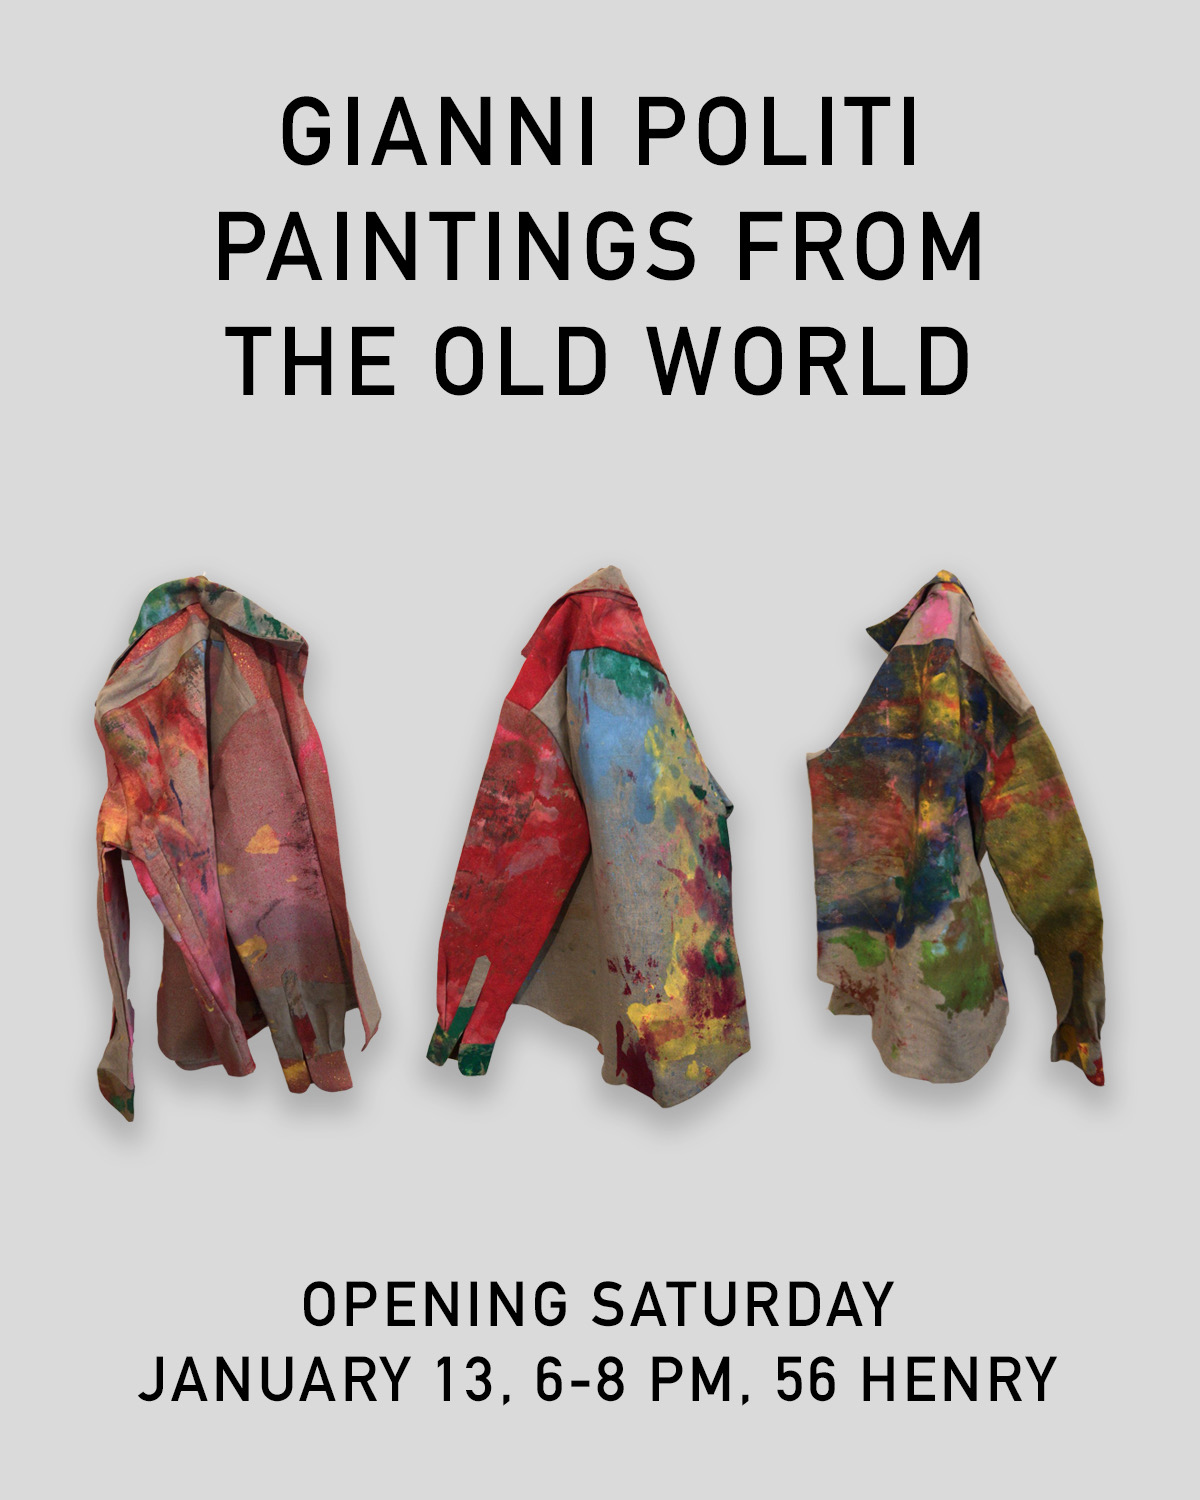 Gianni Politi - Paintings From the Old World - Exhibition Announcement